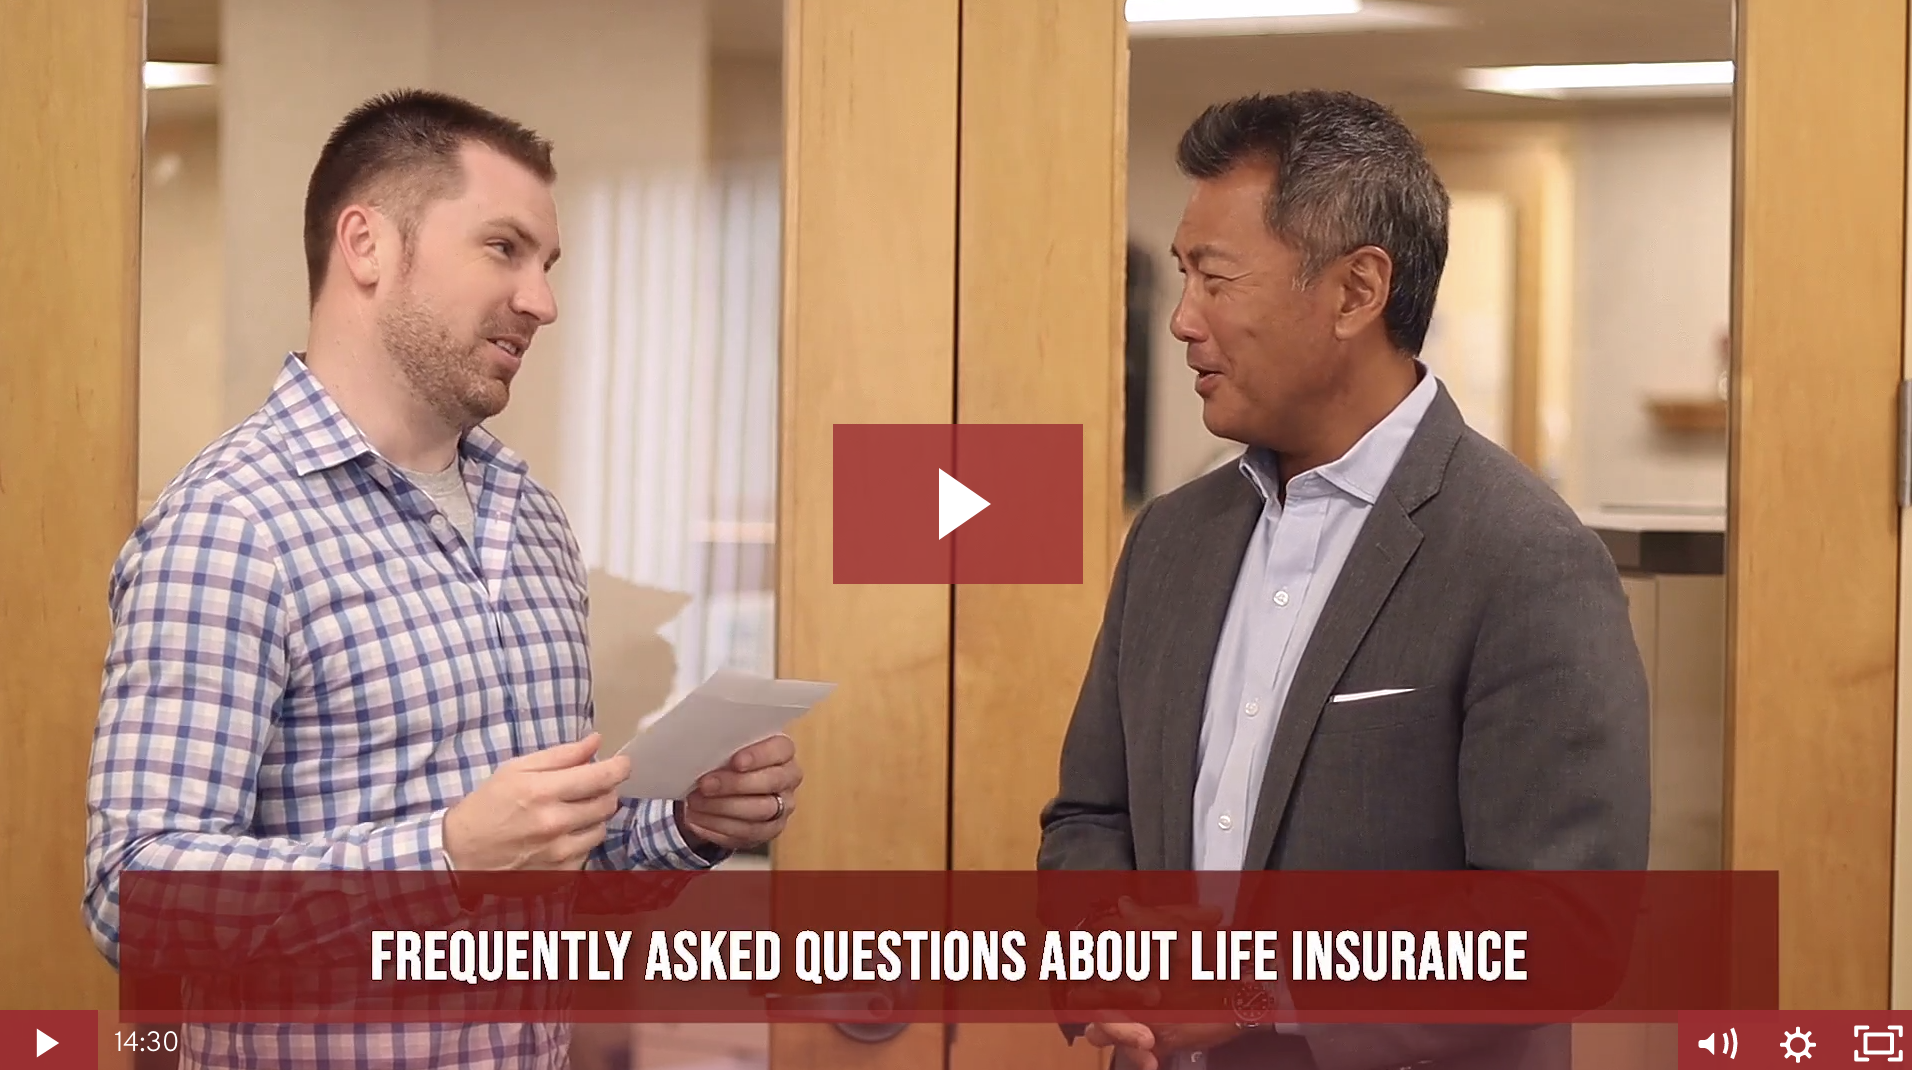 Life Insurance - The If, When, & Why It May Be A Good Option